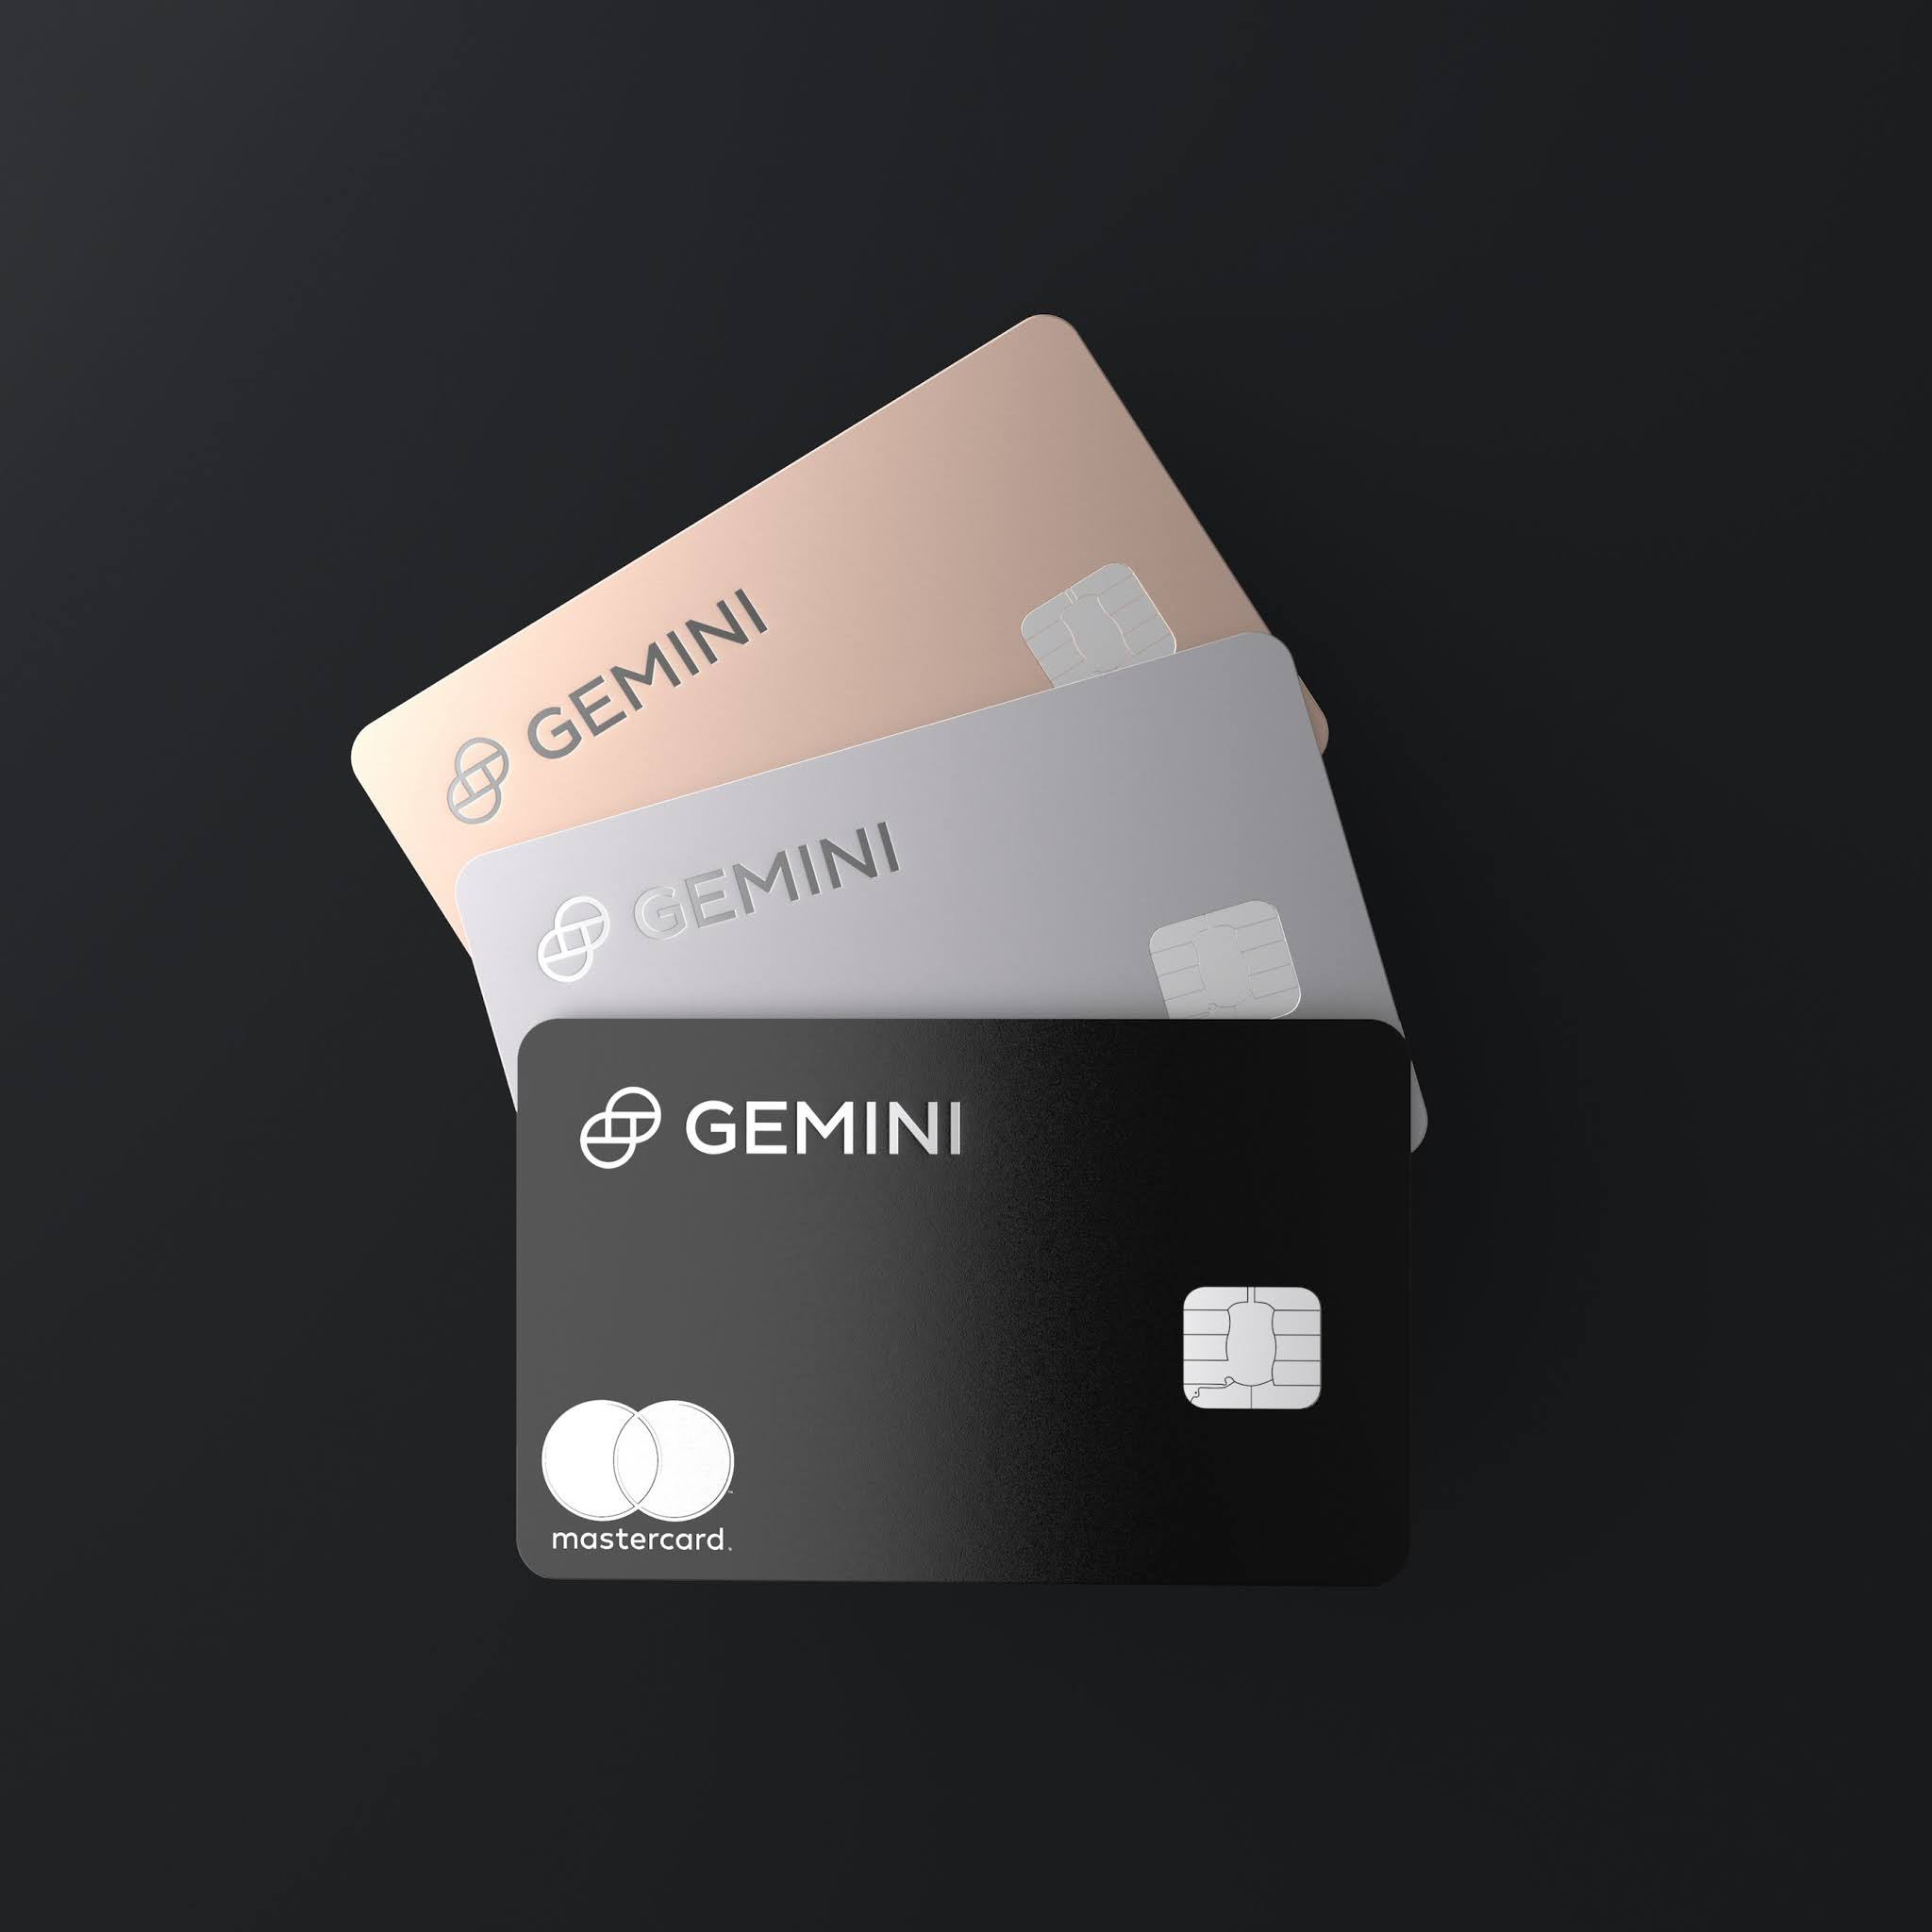 Gemini Partners with Mastercard to Launch New Crypto Rewards Credit Card this Summer